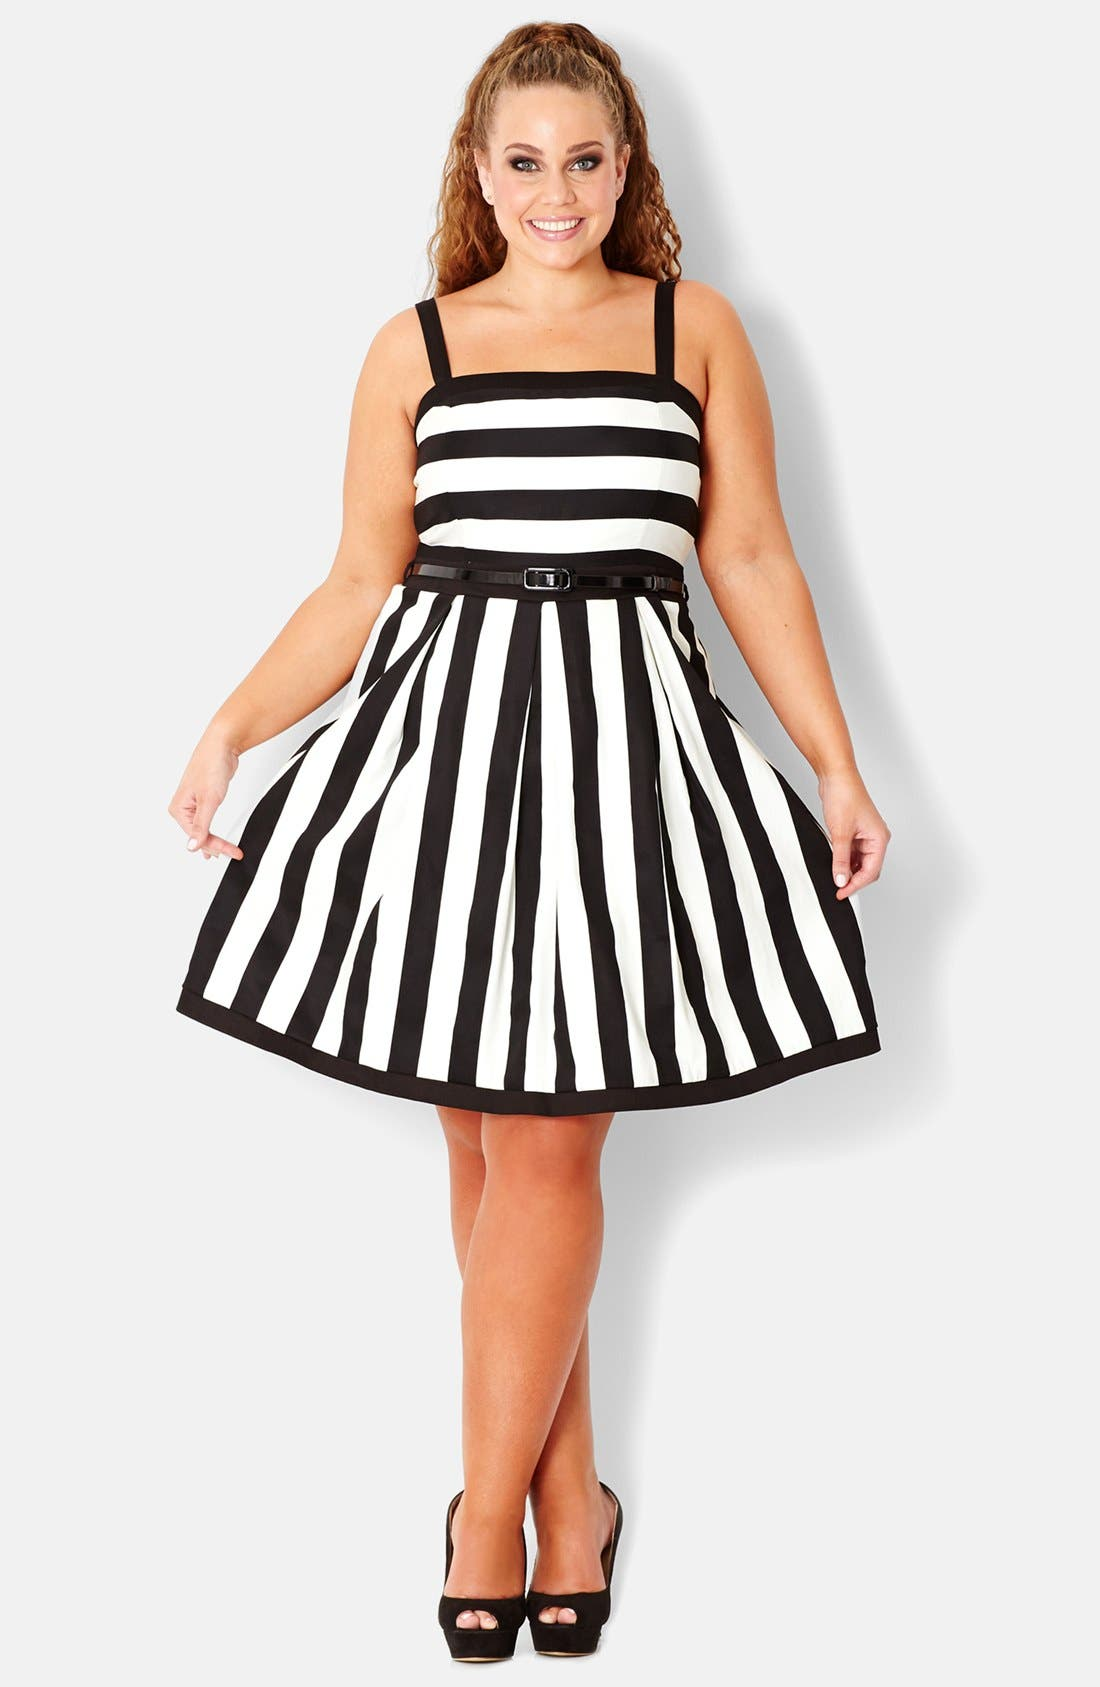 Alternate Image 1 Selected - City Chic Stripe Stretch Cotton Party Dress (Plus Size)